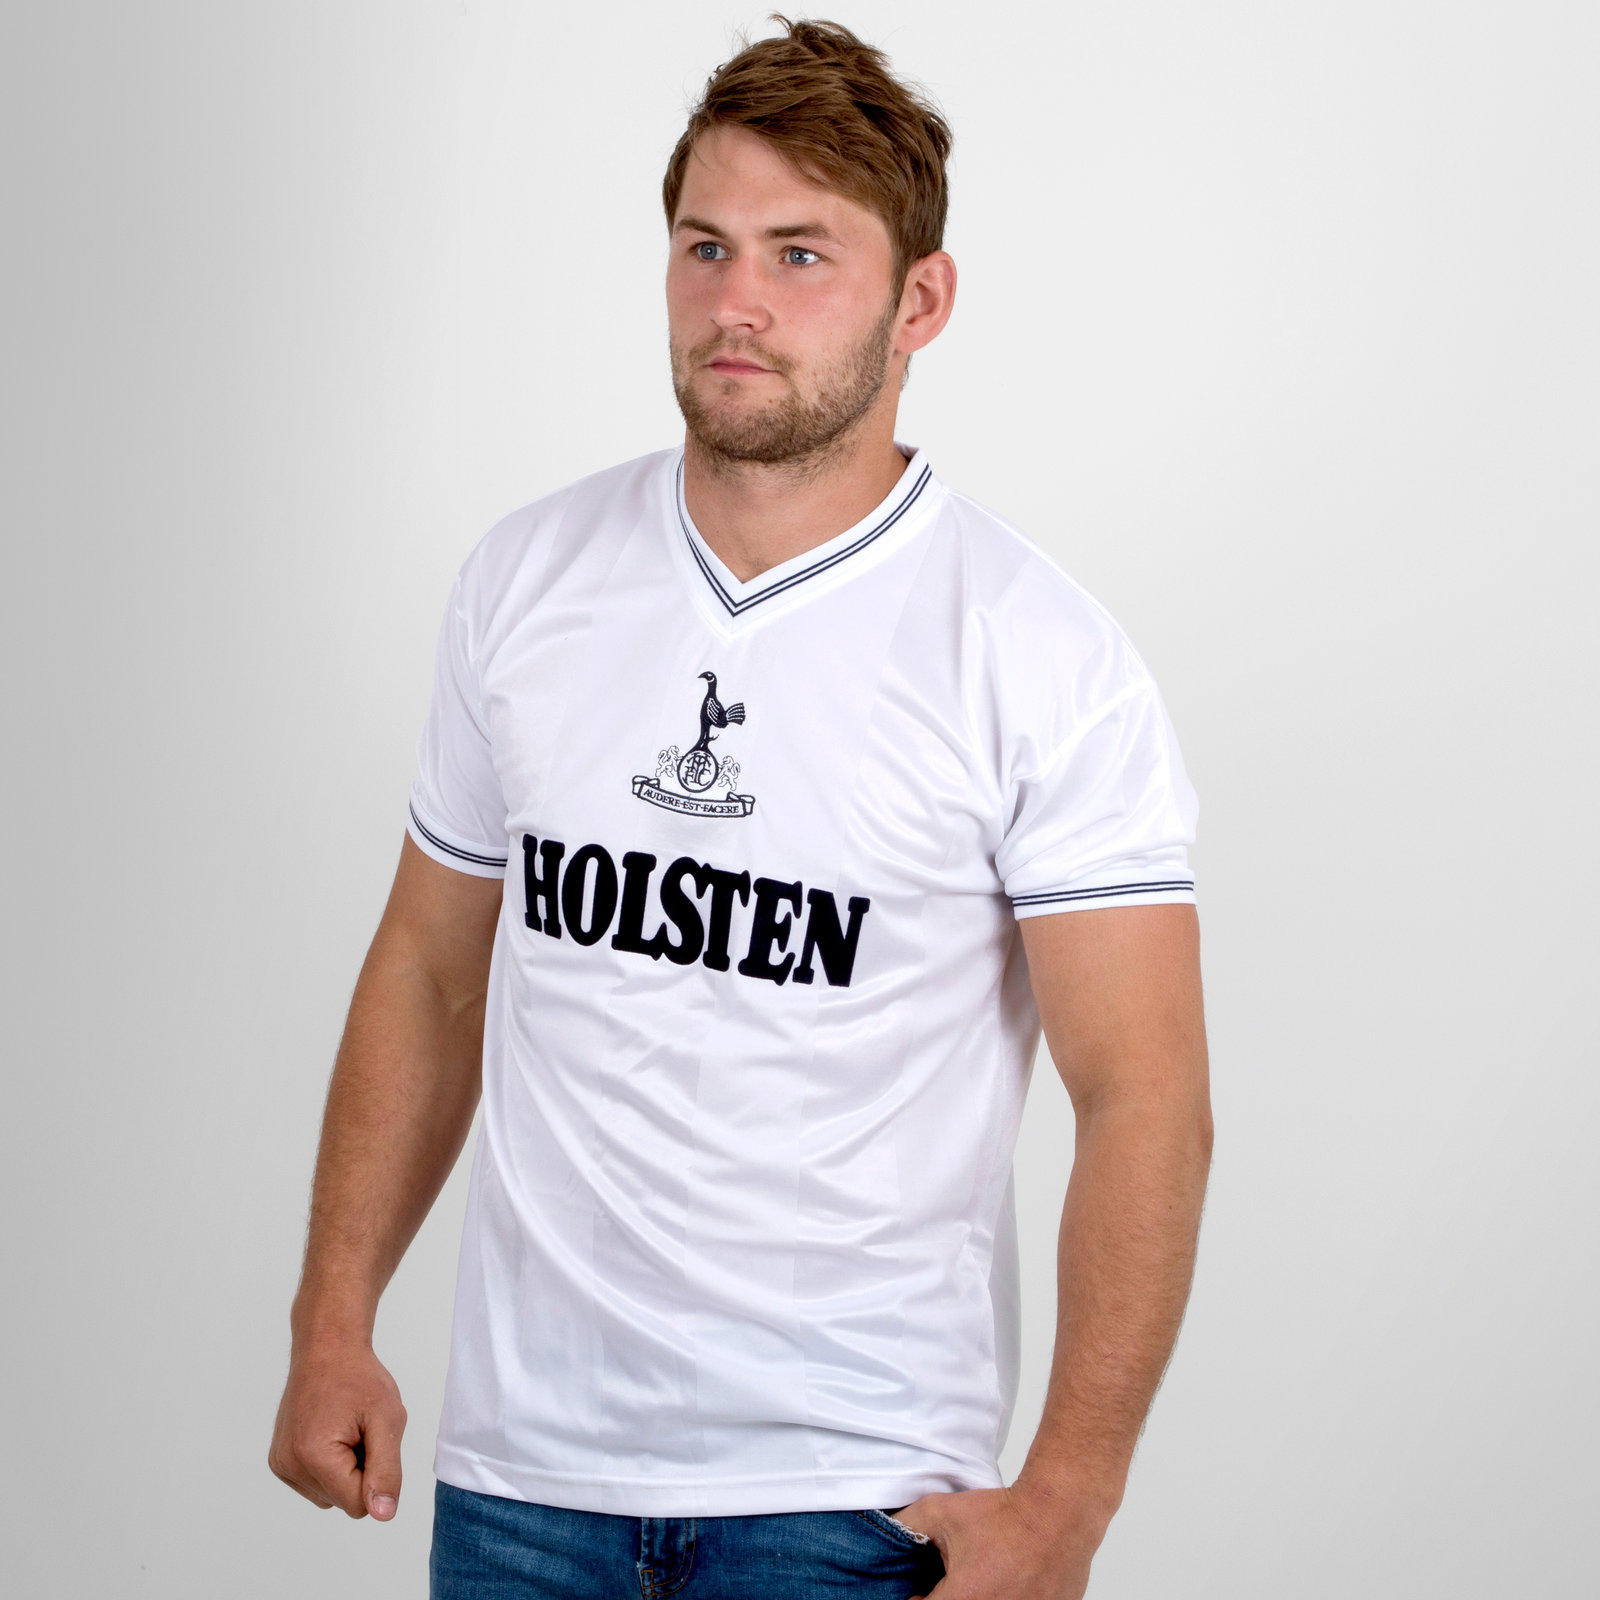 Tottenham Hotspur 1983 short sleeve Retro Football Shirt